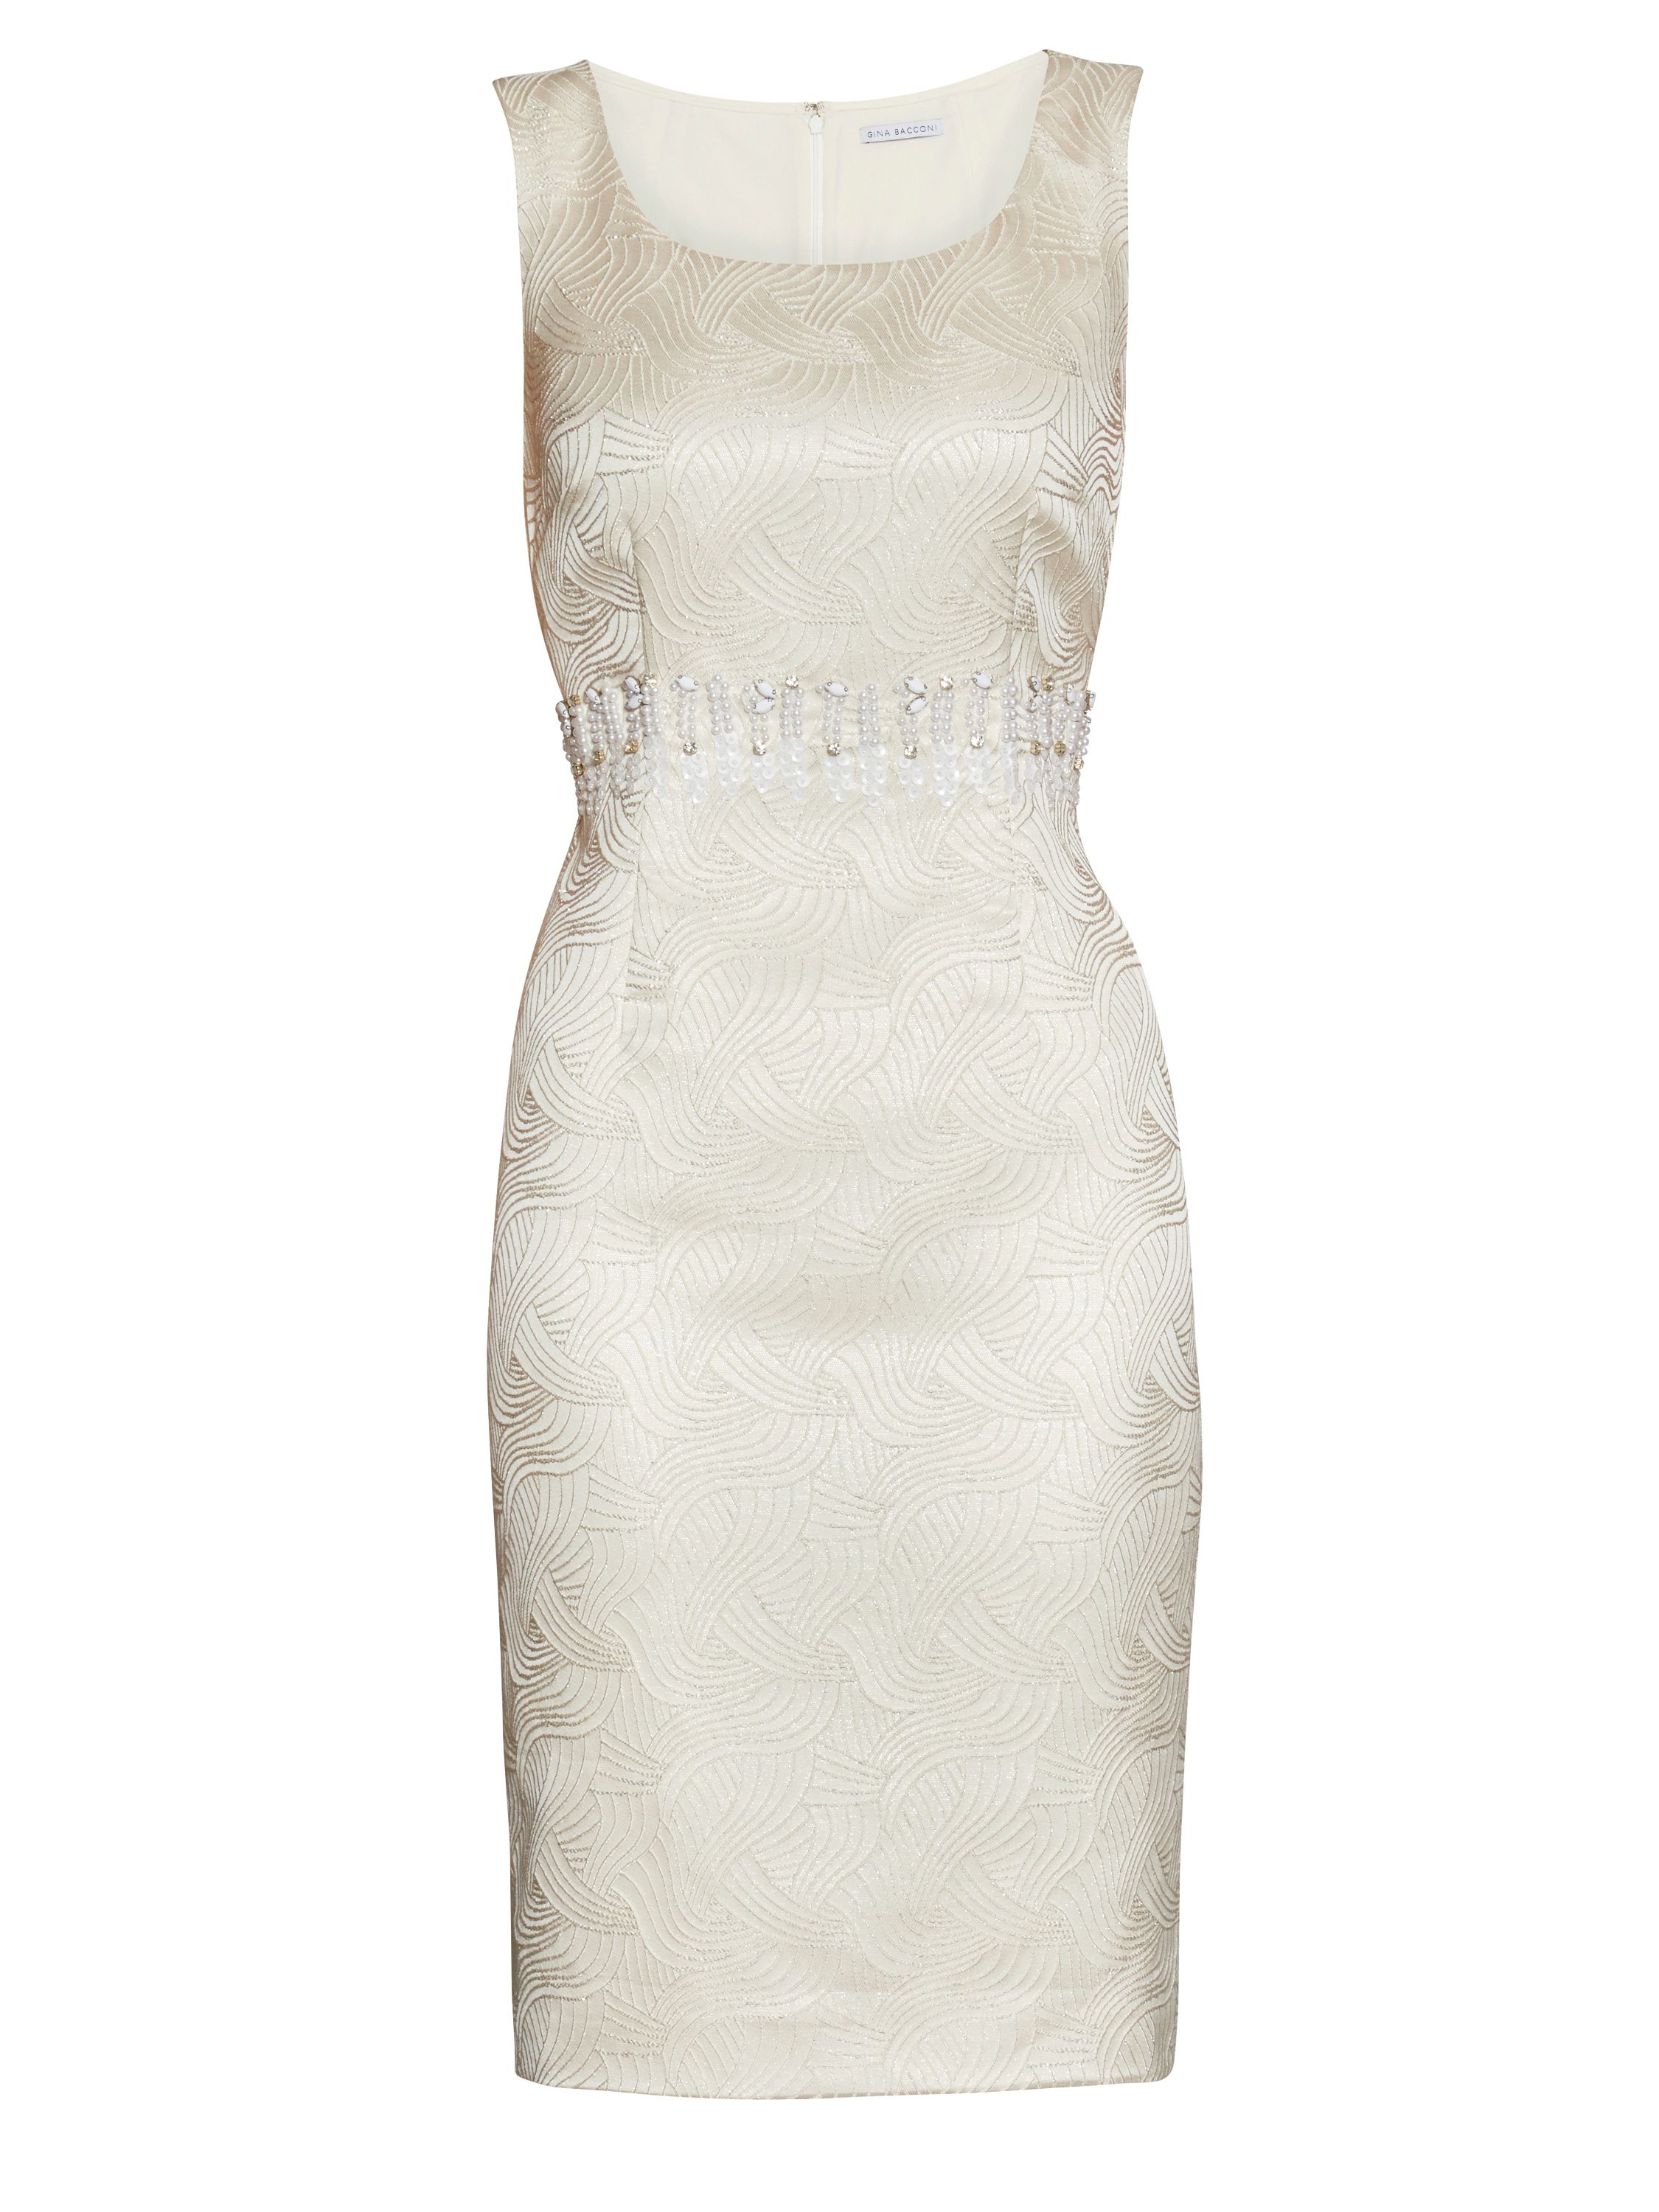 Gina Bacconi Artex metallic jacquard beaded dress, Cream